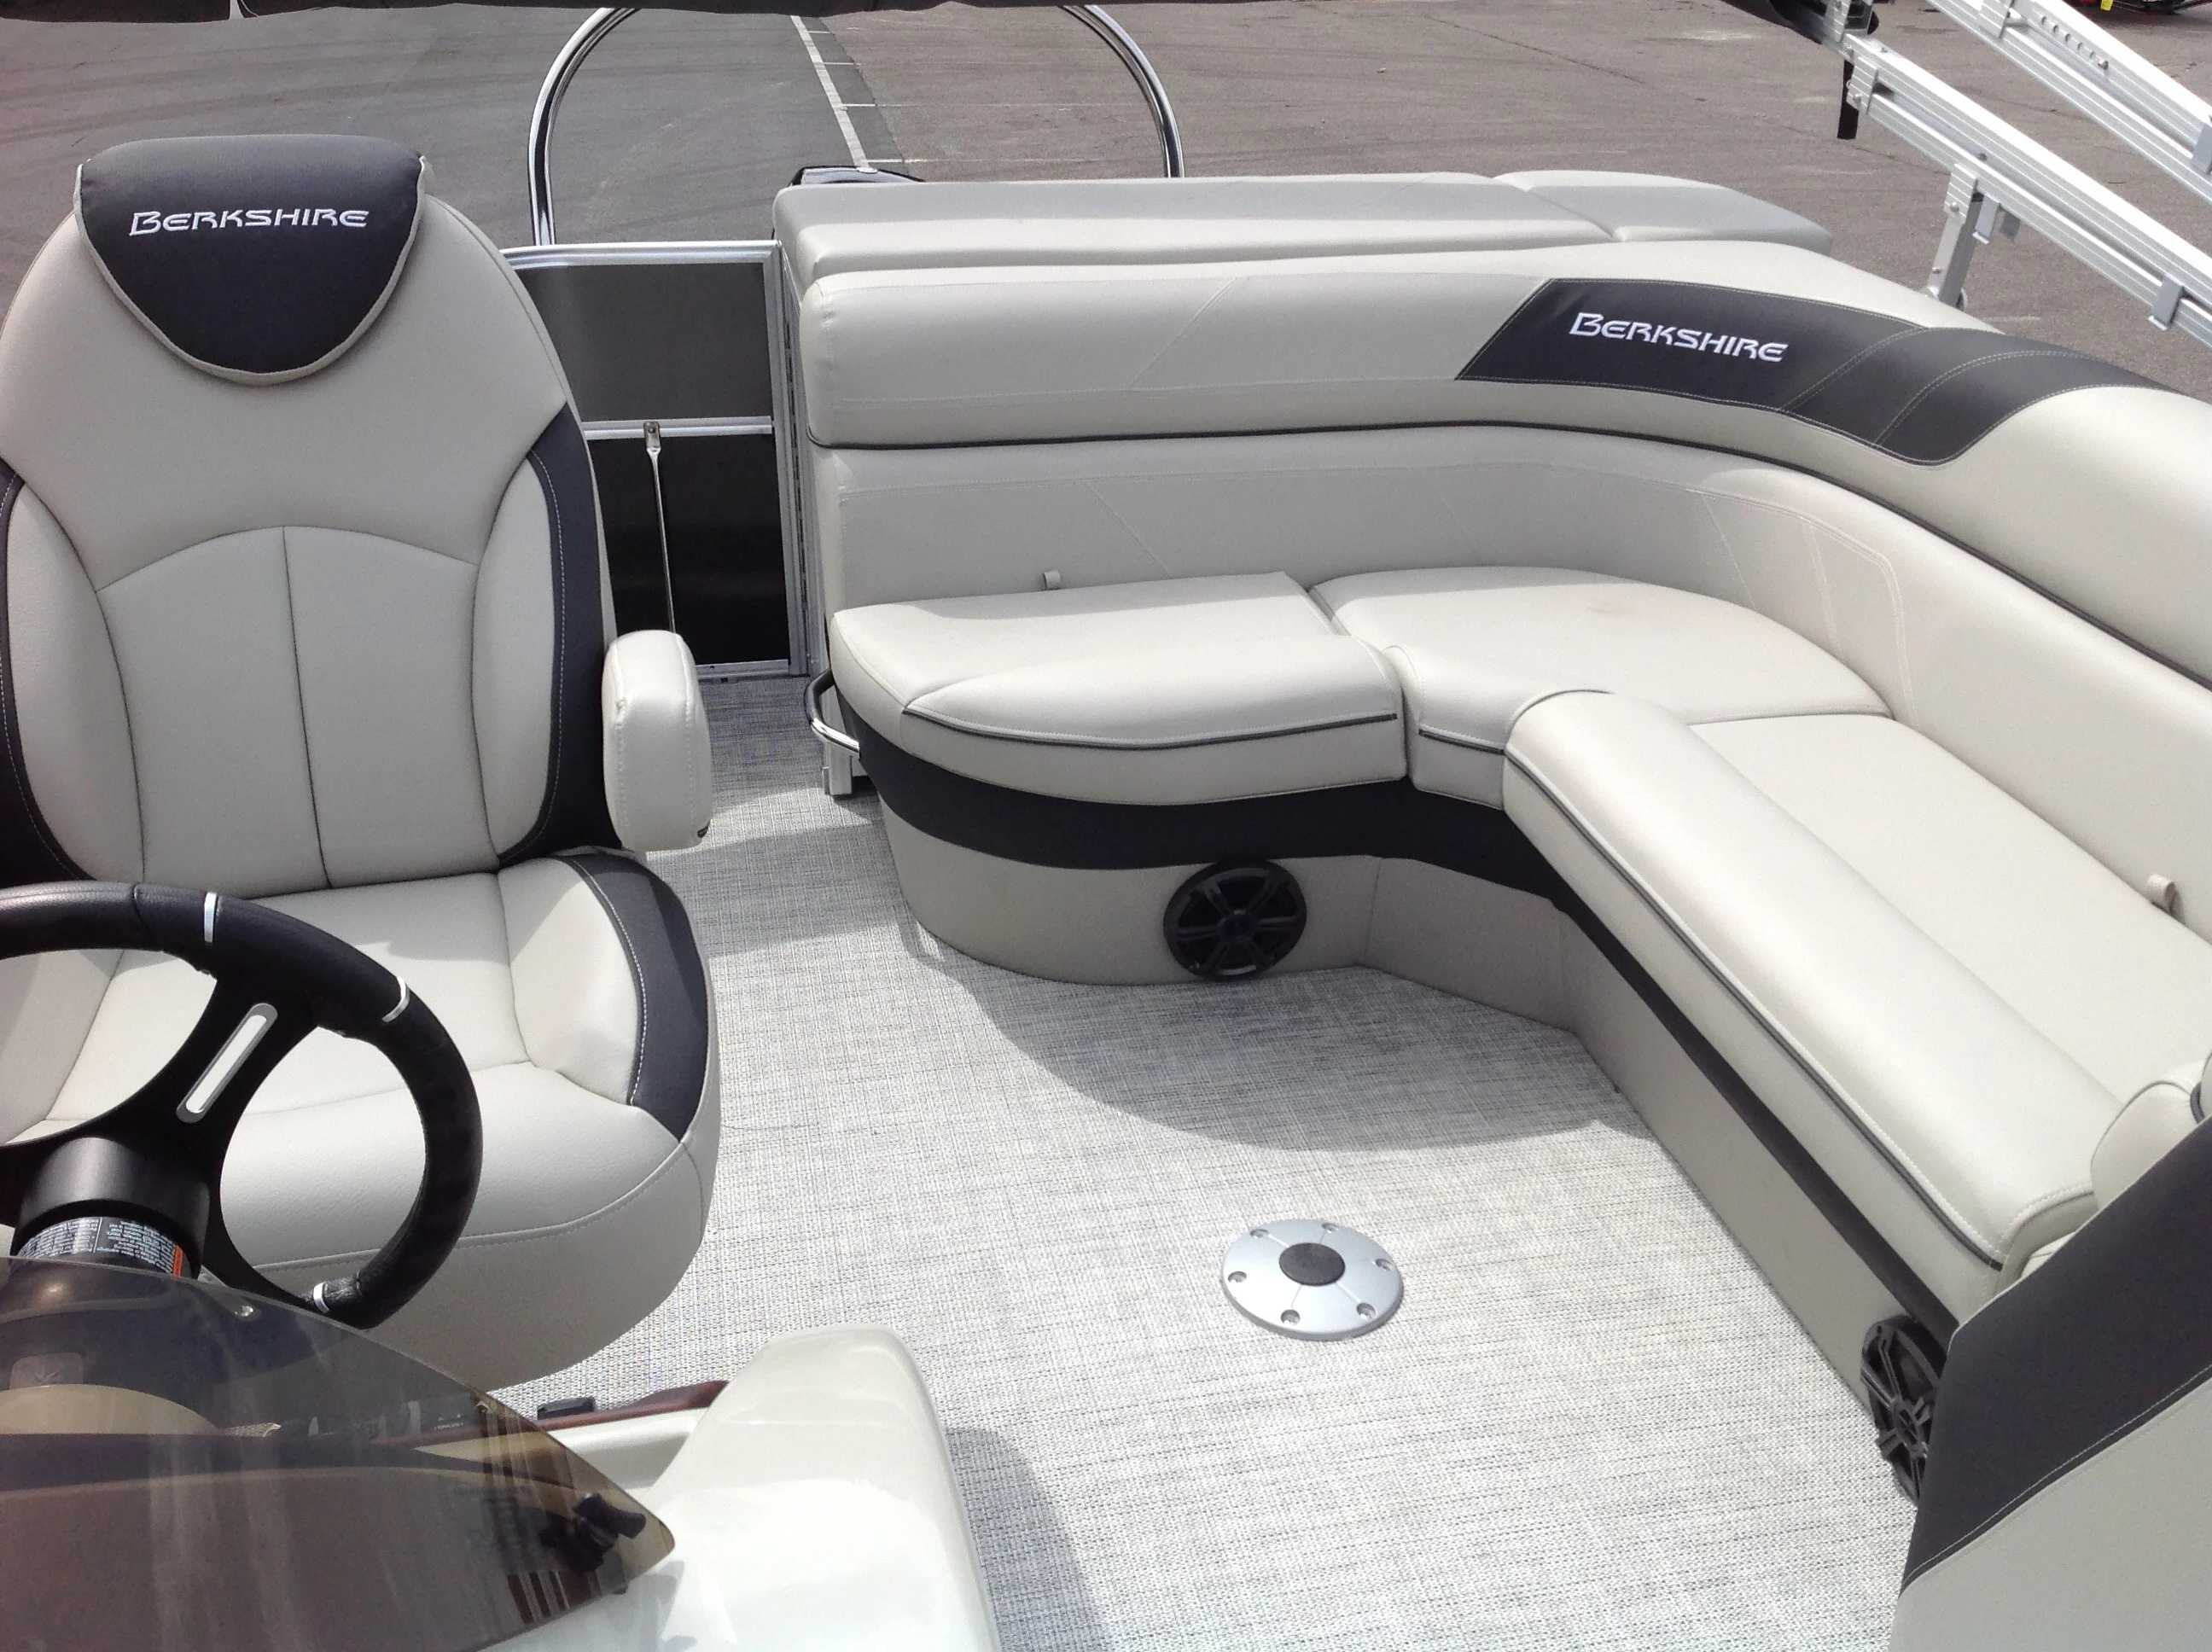 2021 Berkshire Pontoons boat for sale, model of the boat is 20cl Le & Image # 8 of 13